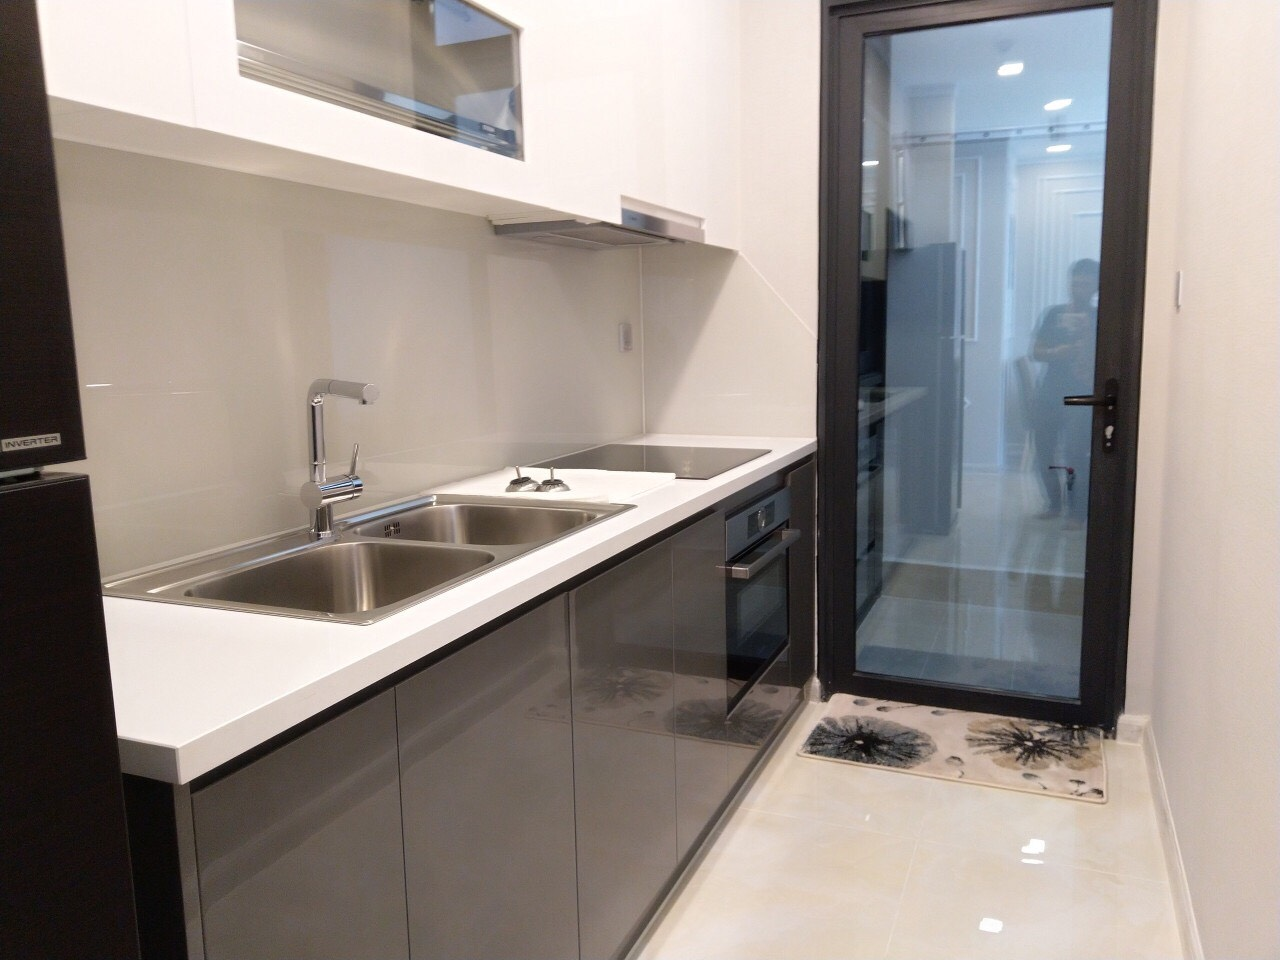 vinhomes golden river apartment for rent in district 1 hcmc D1021122 (9)